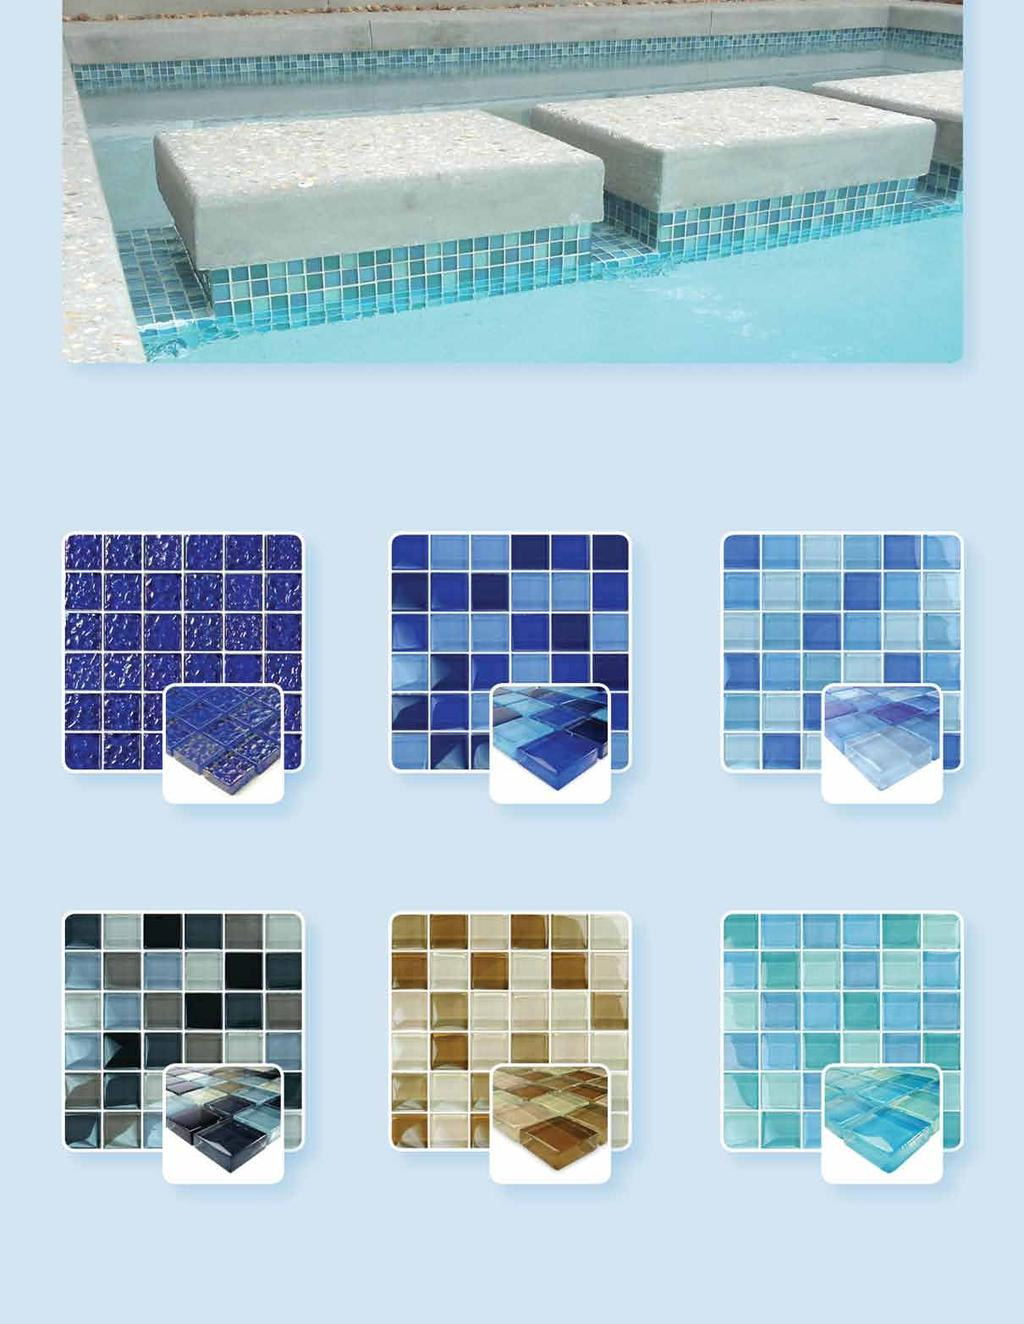 GC82323T1 Featured Sophisticated and Stylish Glass Tile Indulge yourself in the uncommon brilliance of glass mosaic tile by Artistry in Mosaics frost proof quality that will last a lifetime.